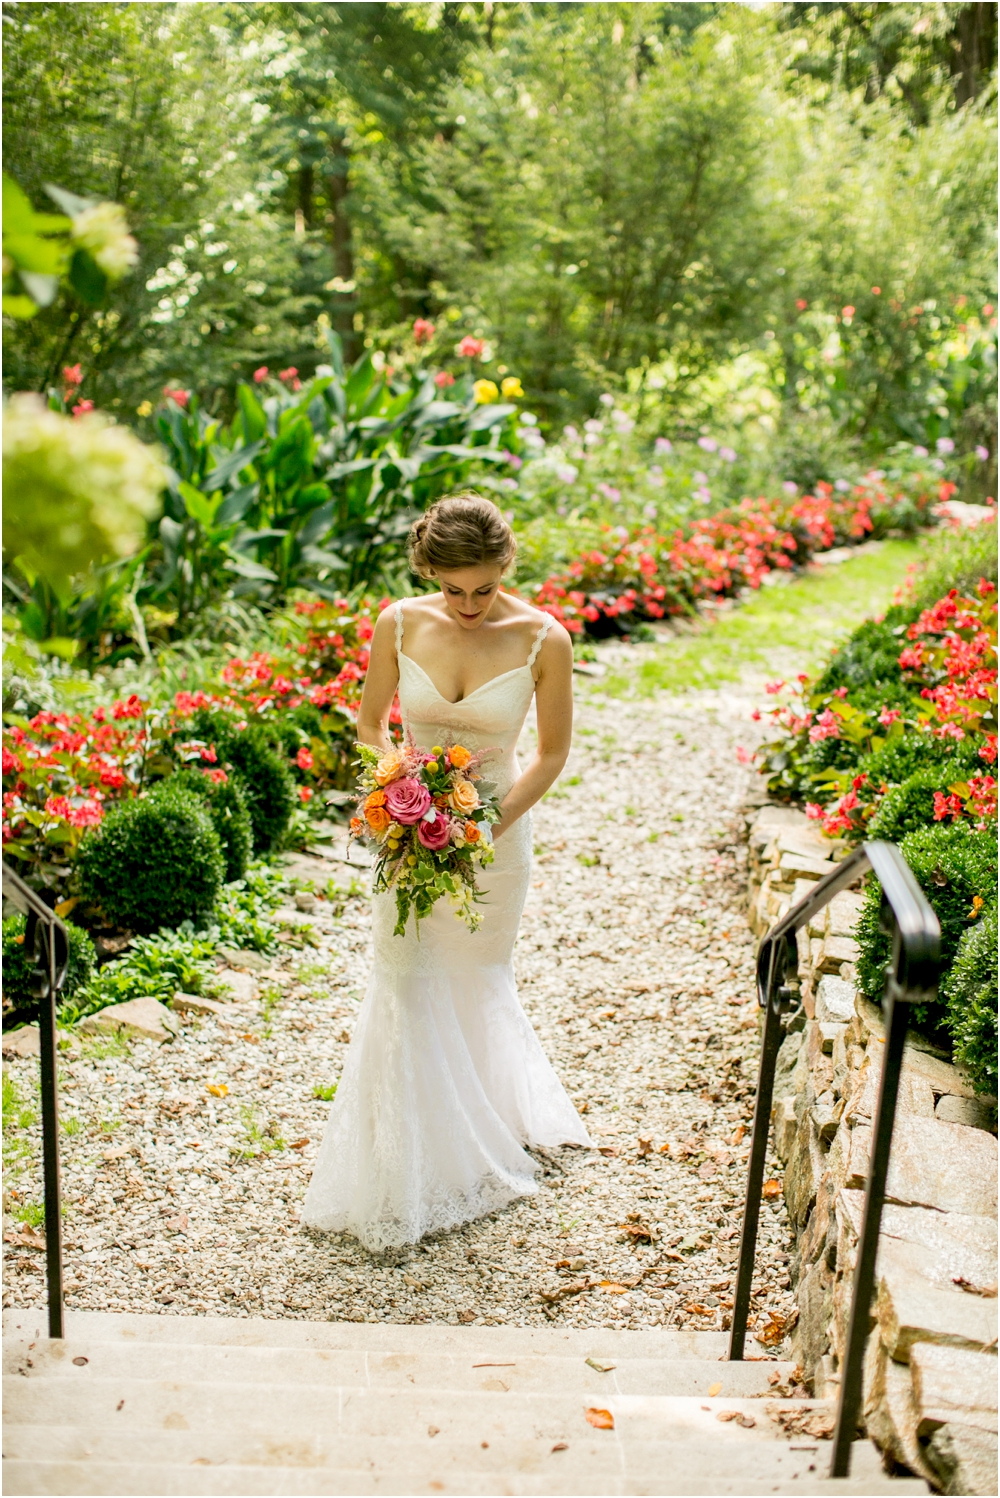 daniel chrissy gramercy mansion outdoor garden wedding living radiant photography_0035.jpg